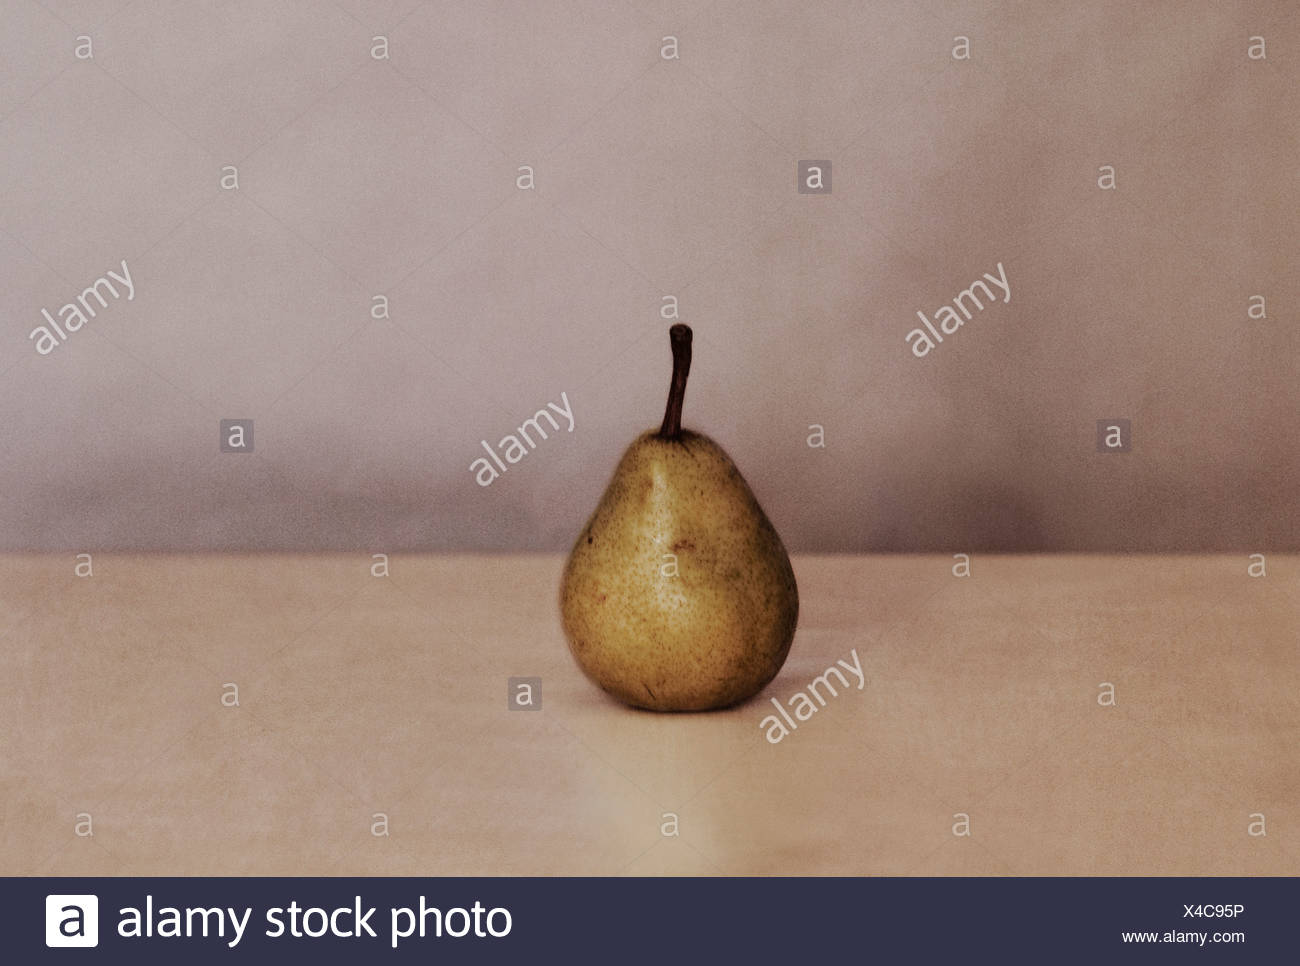 Pear on table - Stock Image